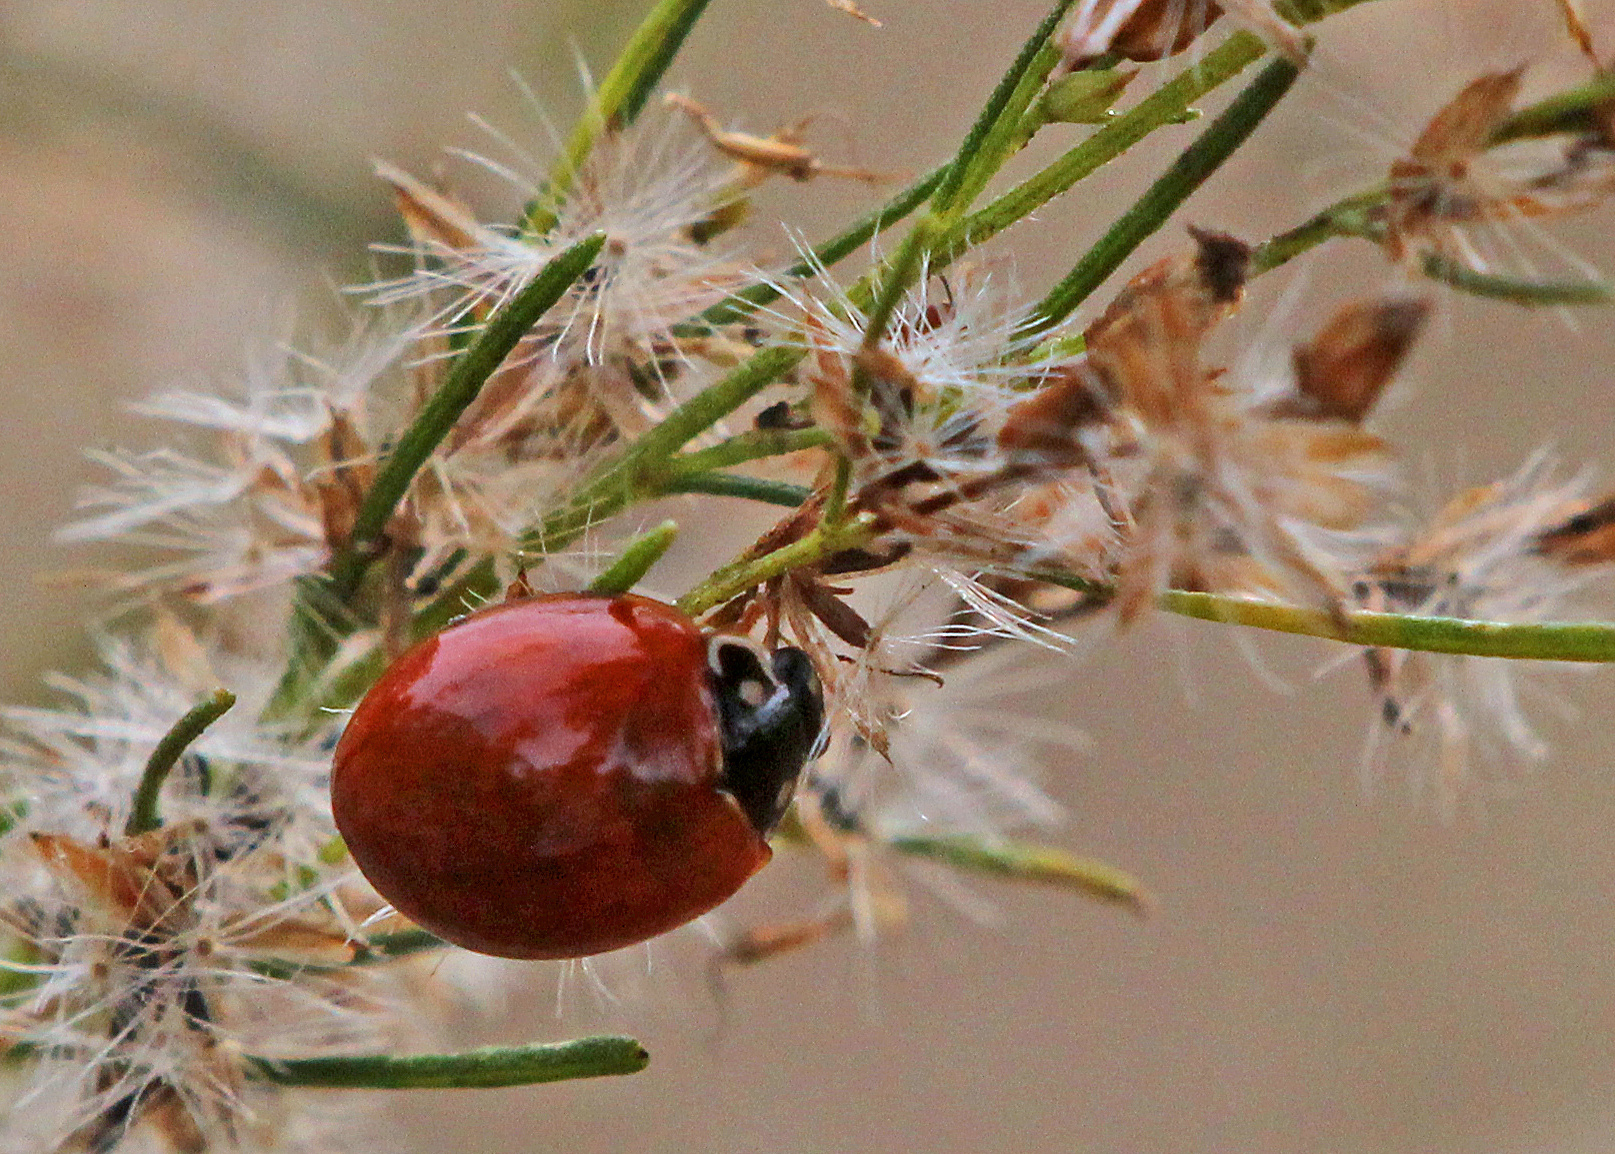 Image of Spotless Lady Beetle